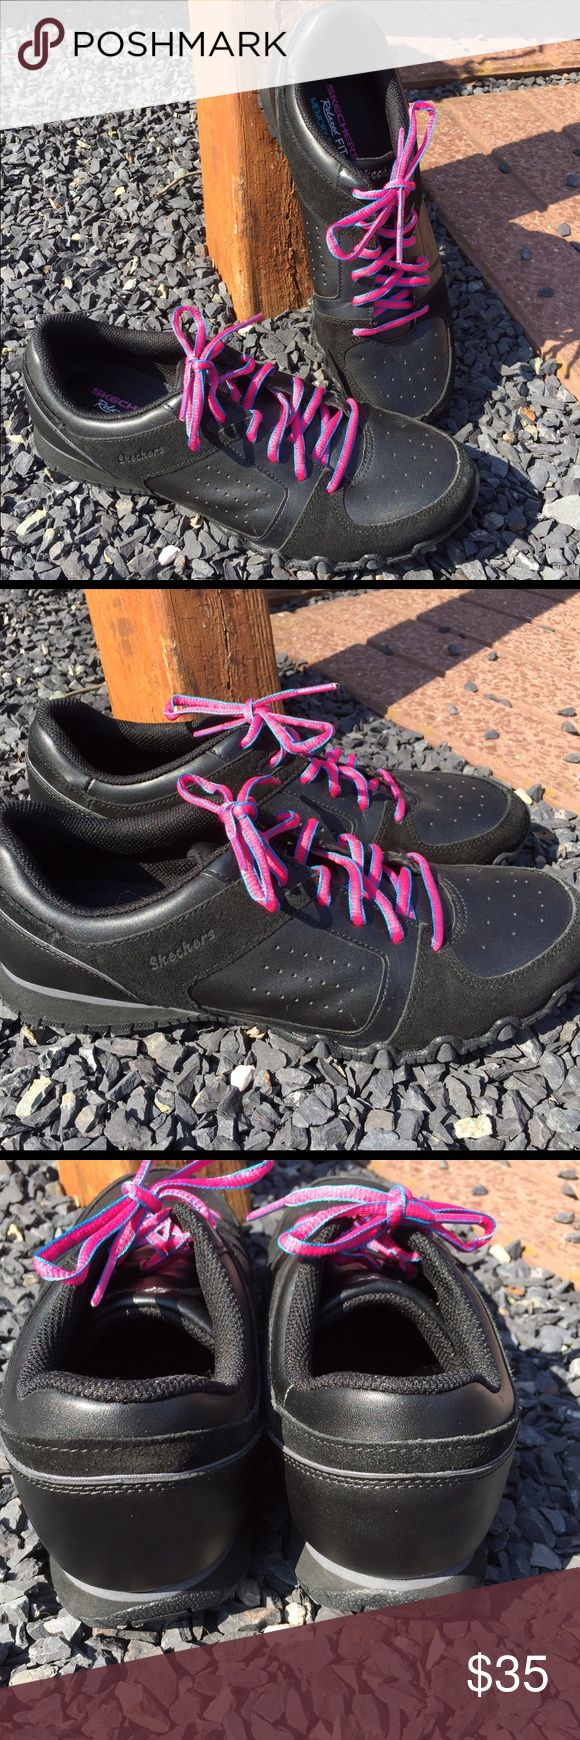 Skechers Relaxed Fit Memory Foam Sneakers Size 9.5 Size 9.5. Never worn. Be sure to view the other items in our closet. We offer both women's and Mens items in a variety of sizes. Bundle and save!! Thank you for viewing our item!! Skechers Shoes Sneakers